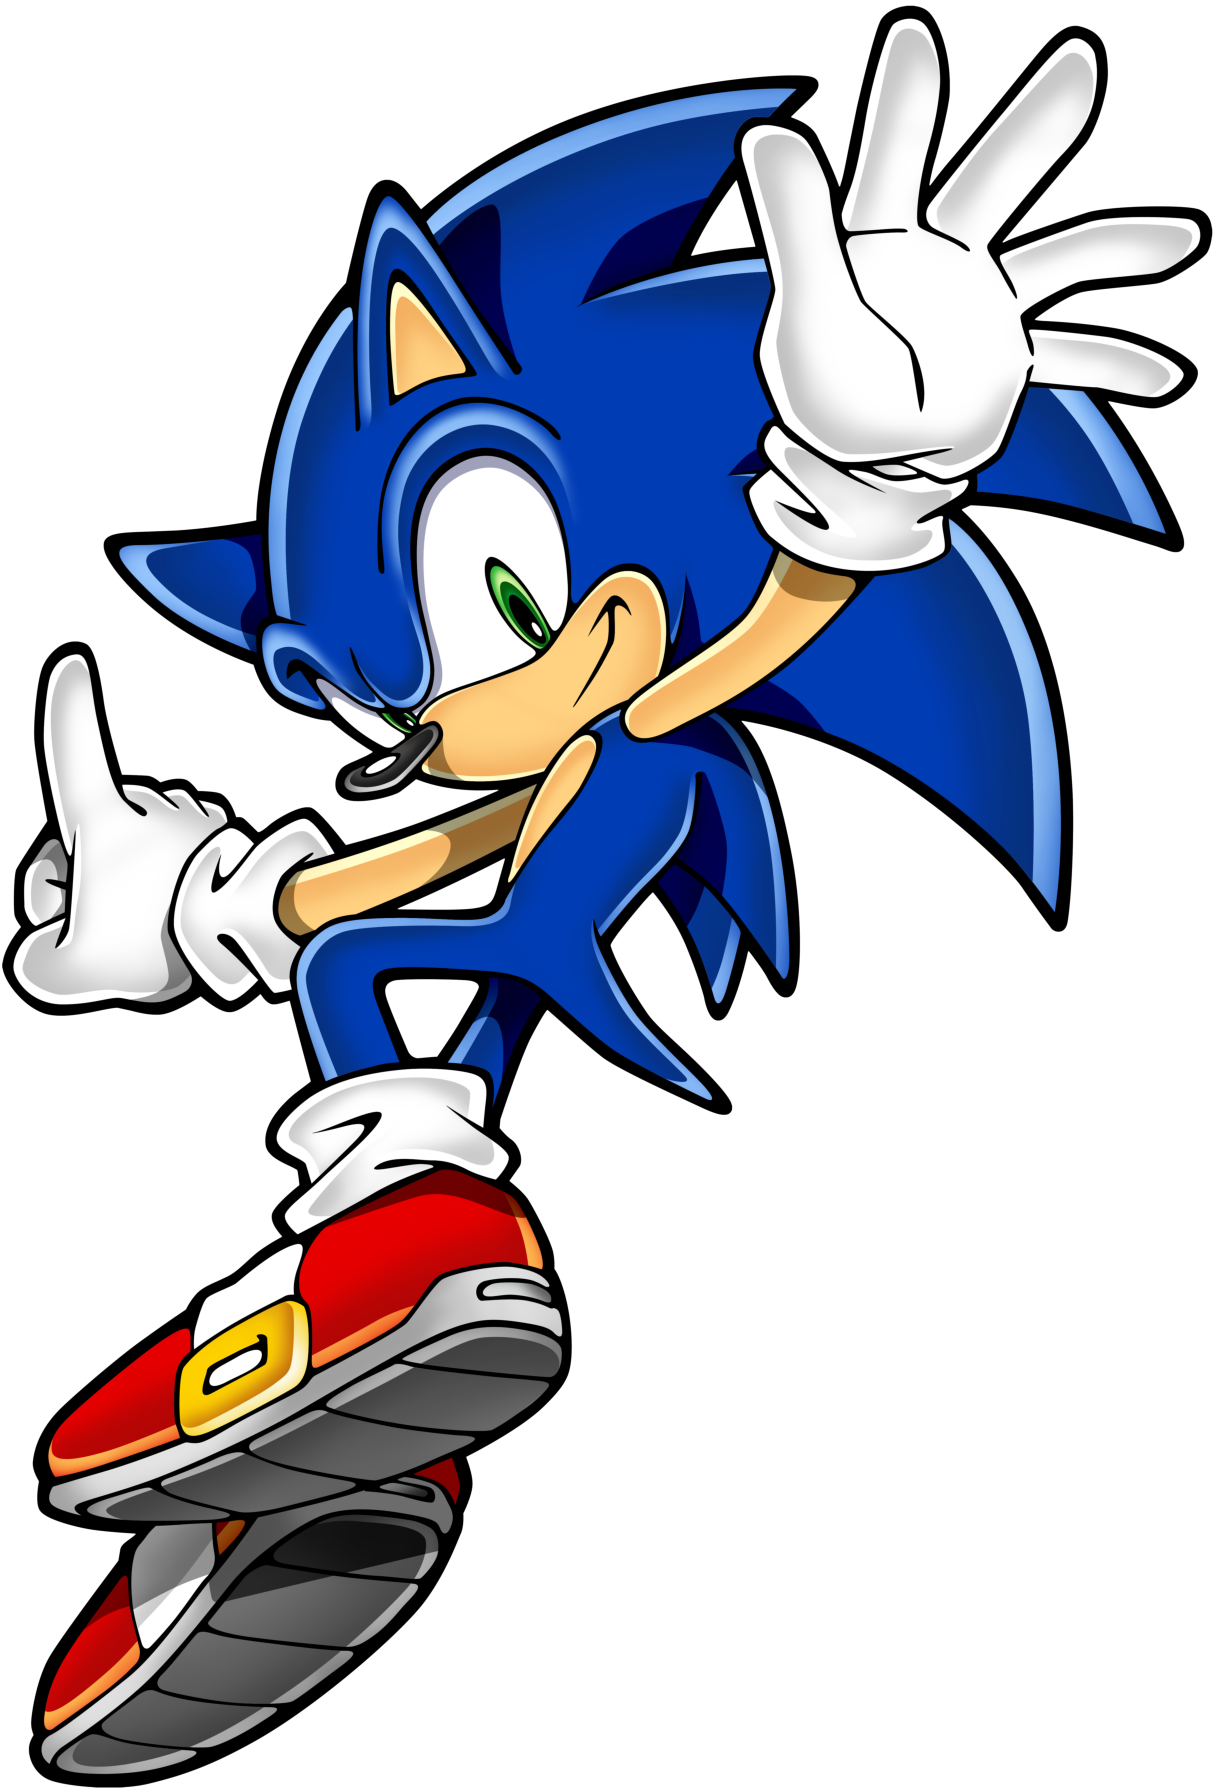 Yes, this is New Sonic rather than Old Sonic. Sue me, I prefer the art even if not the games.